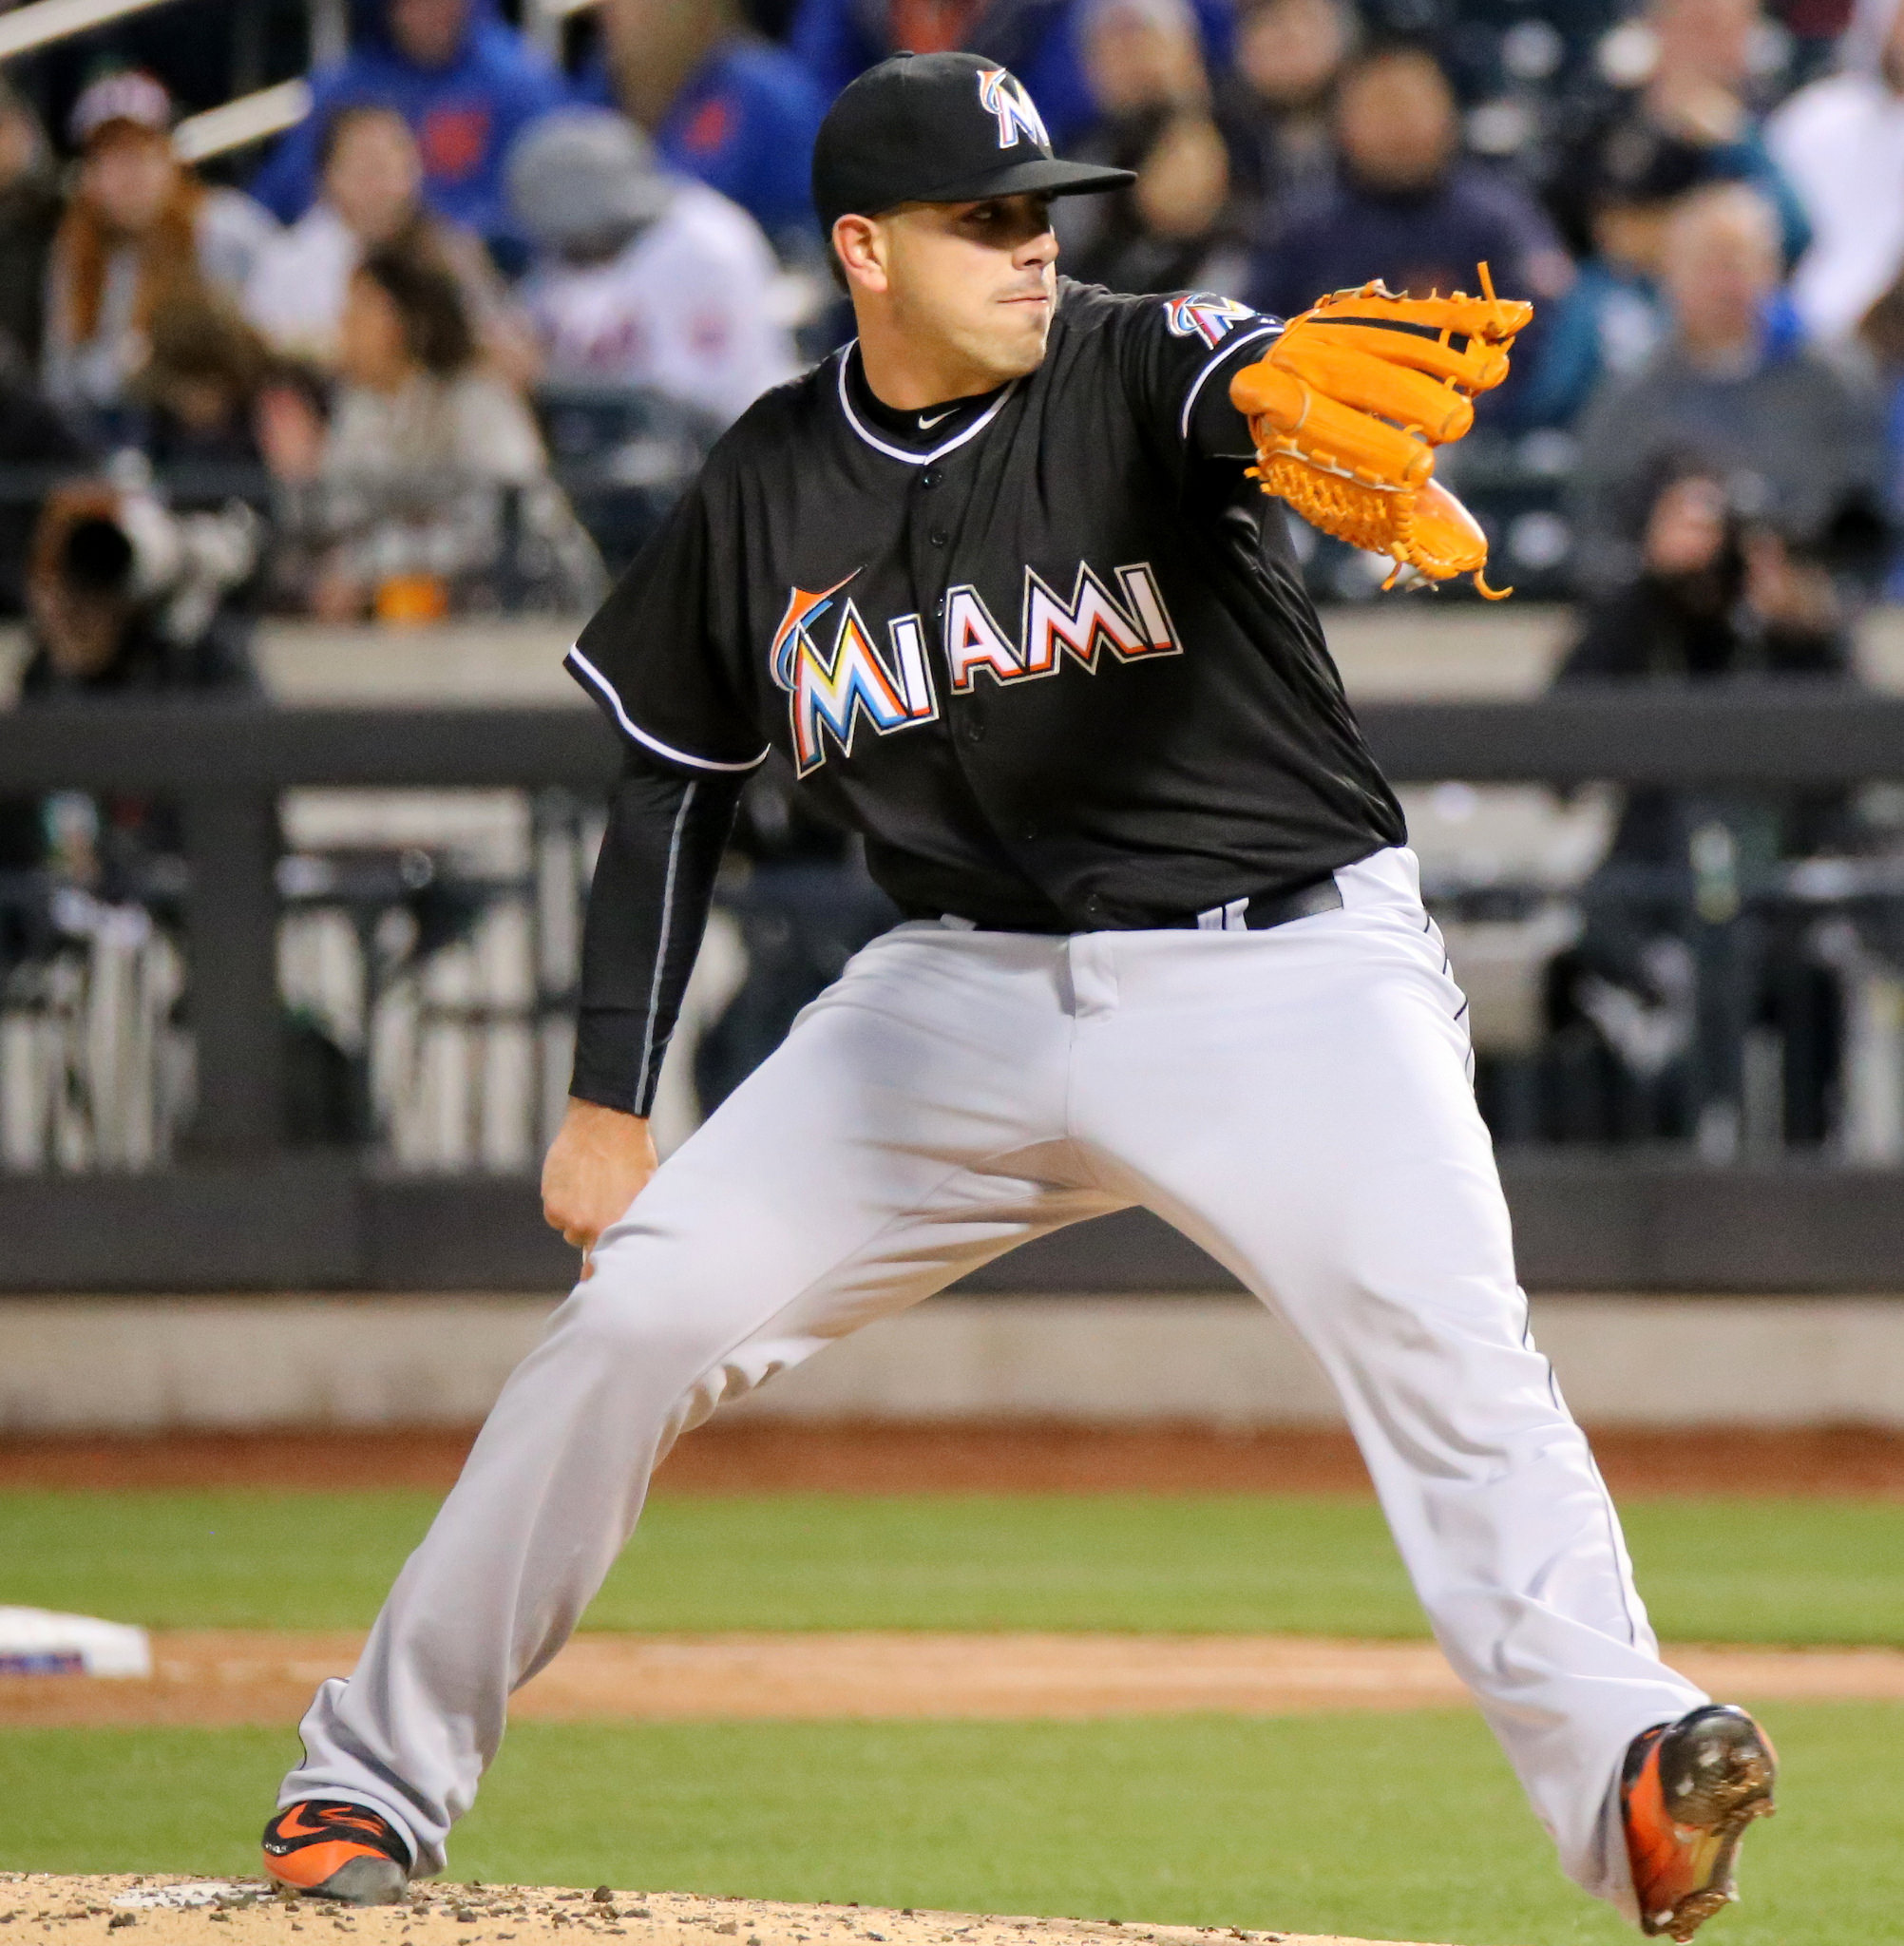 Miami Marlins pitcher José Fernández was found dead in the Miami Harbor early Sunday morning, Sept. 25.